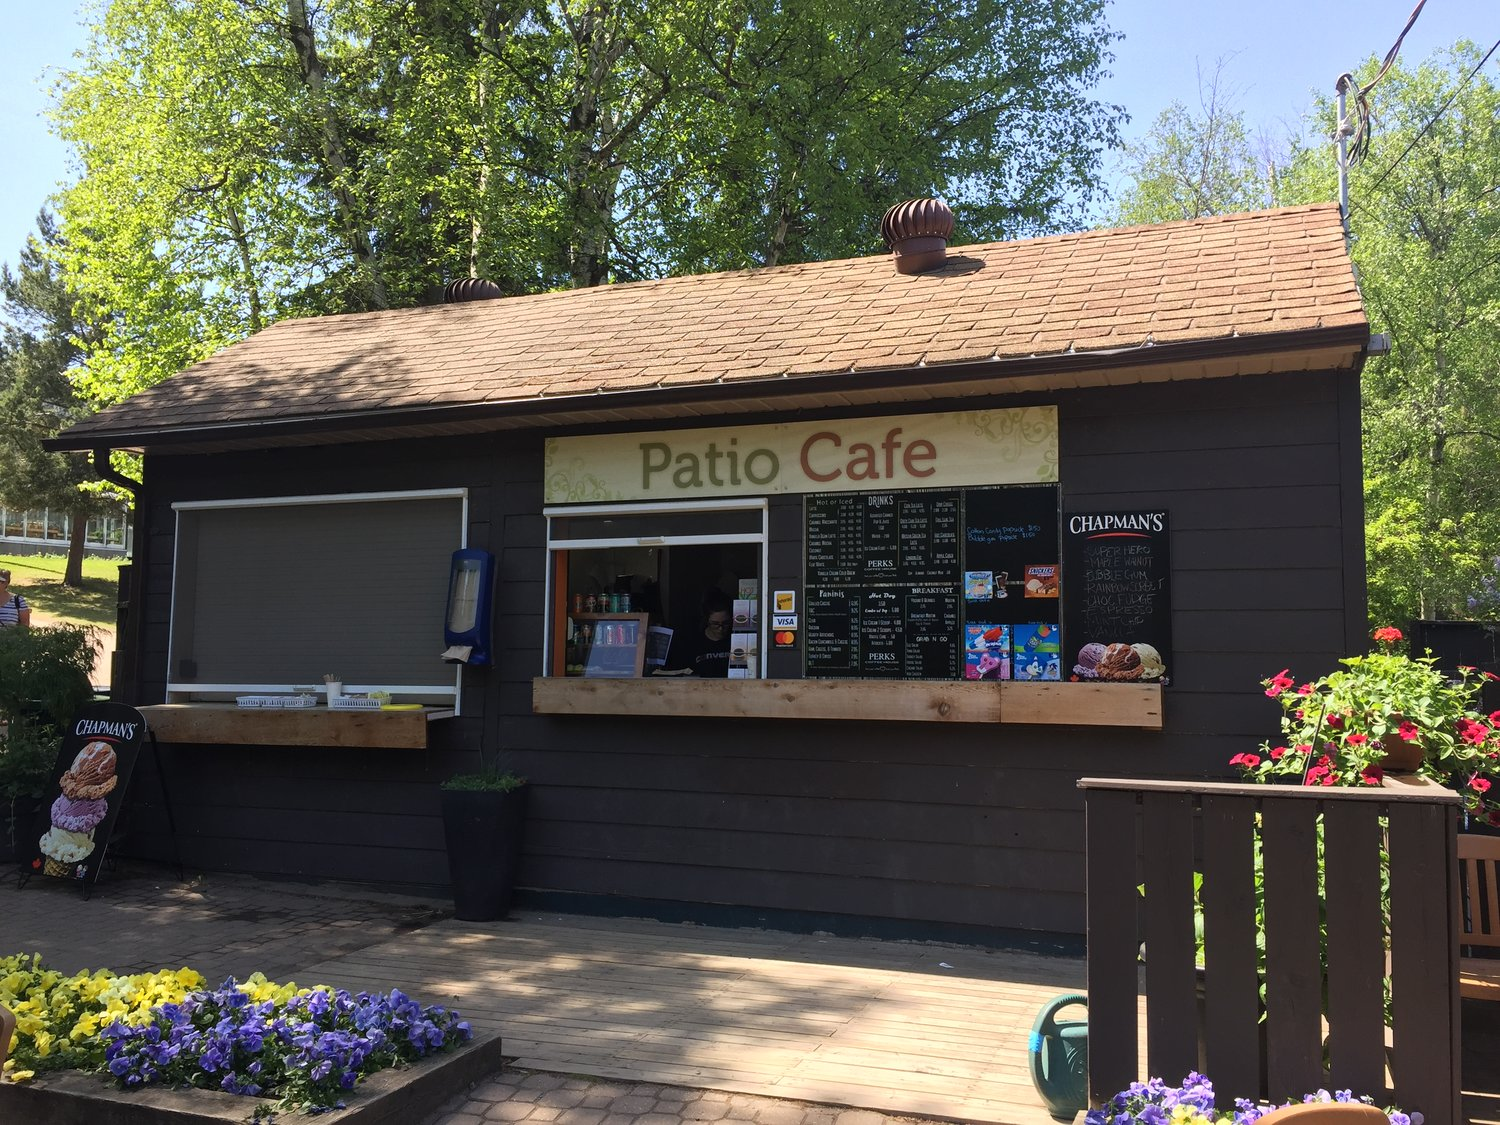 patio cafejpg - Patio Cafe